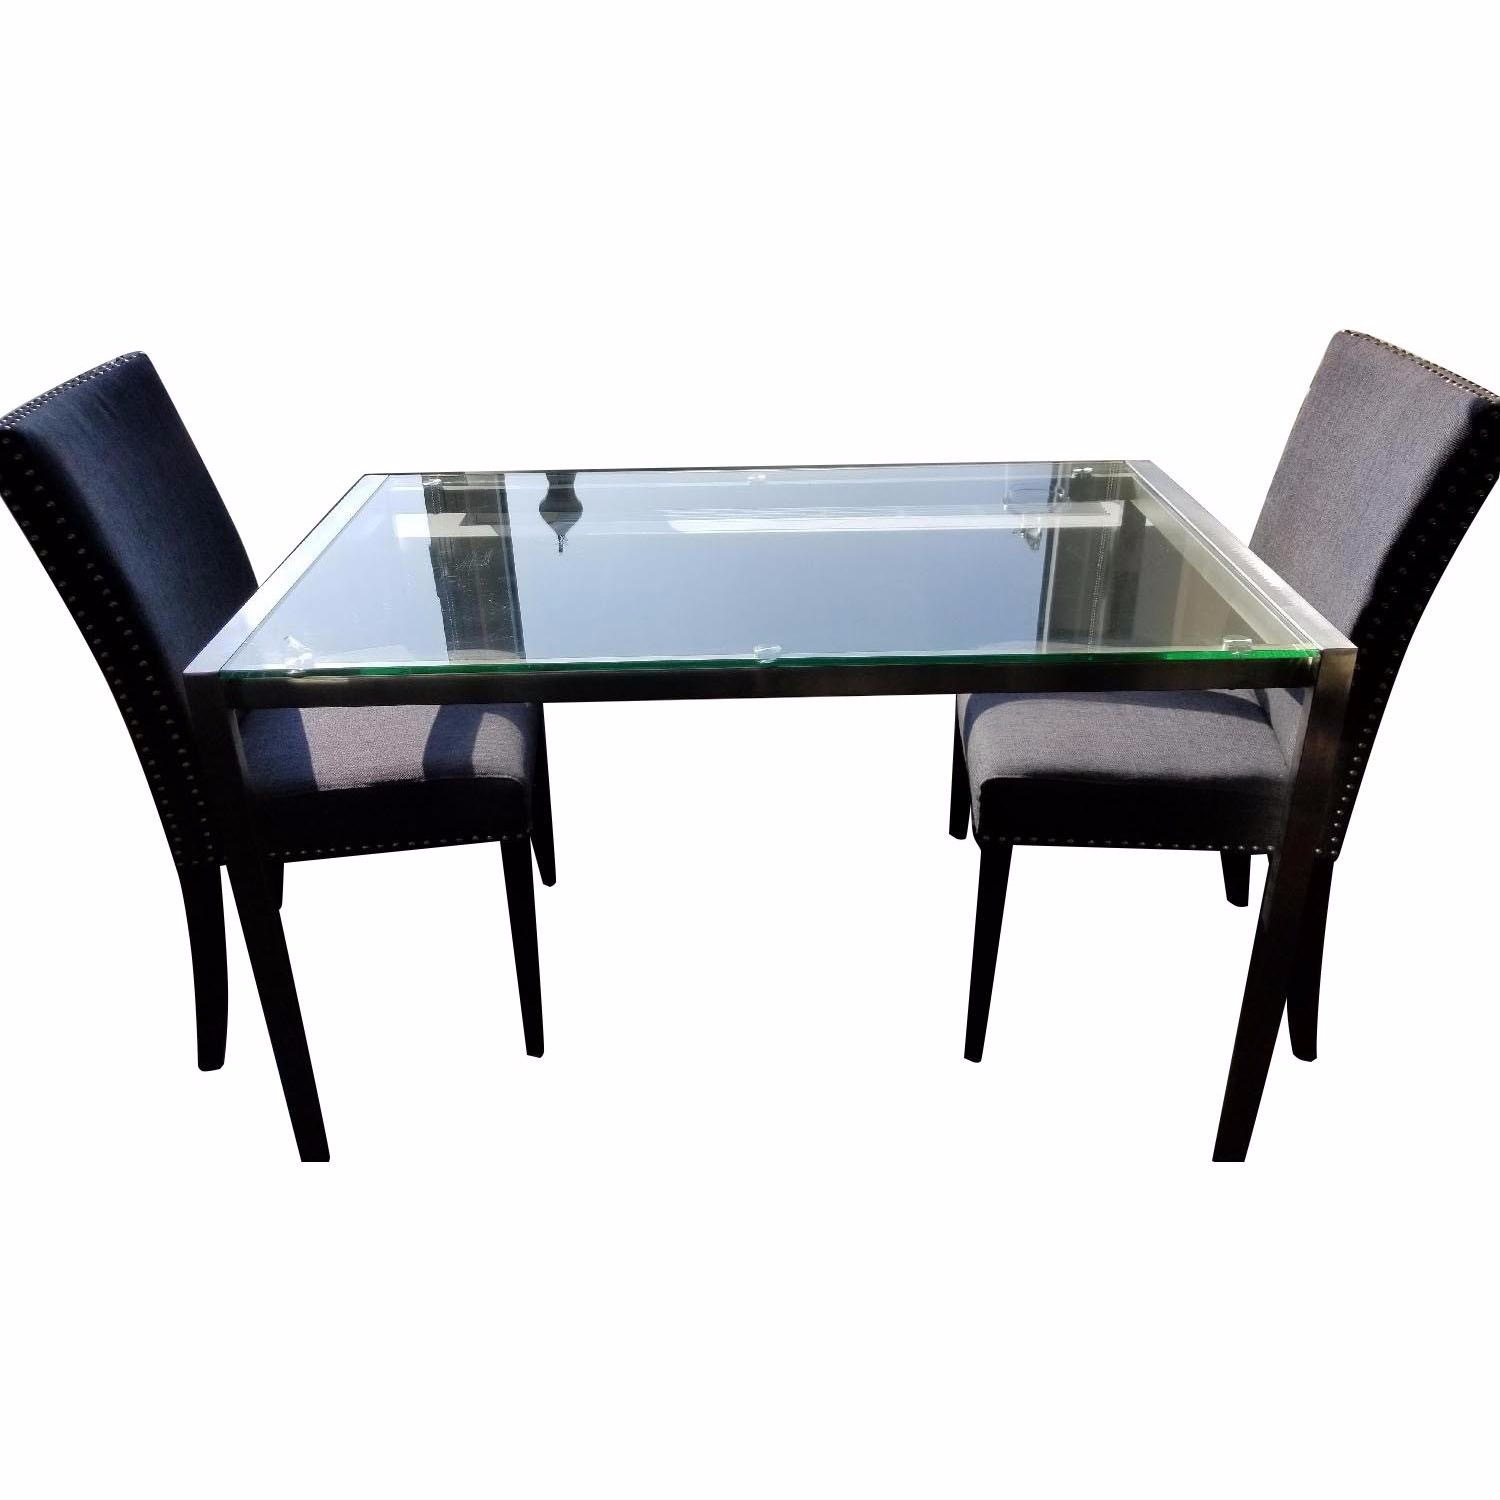 Baxton Studio Glass Desk or Dining Table w 2 Gray Chairs - image-4